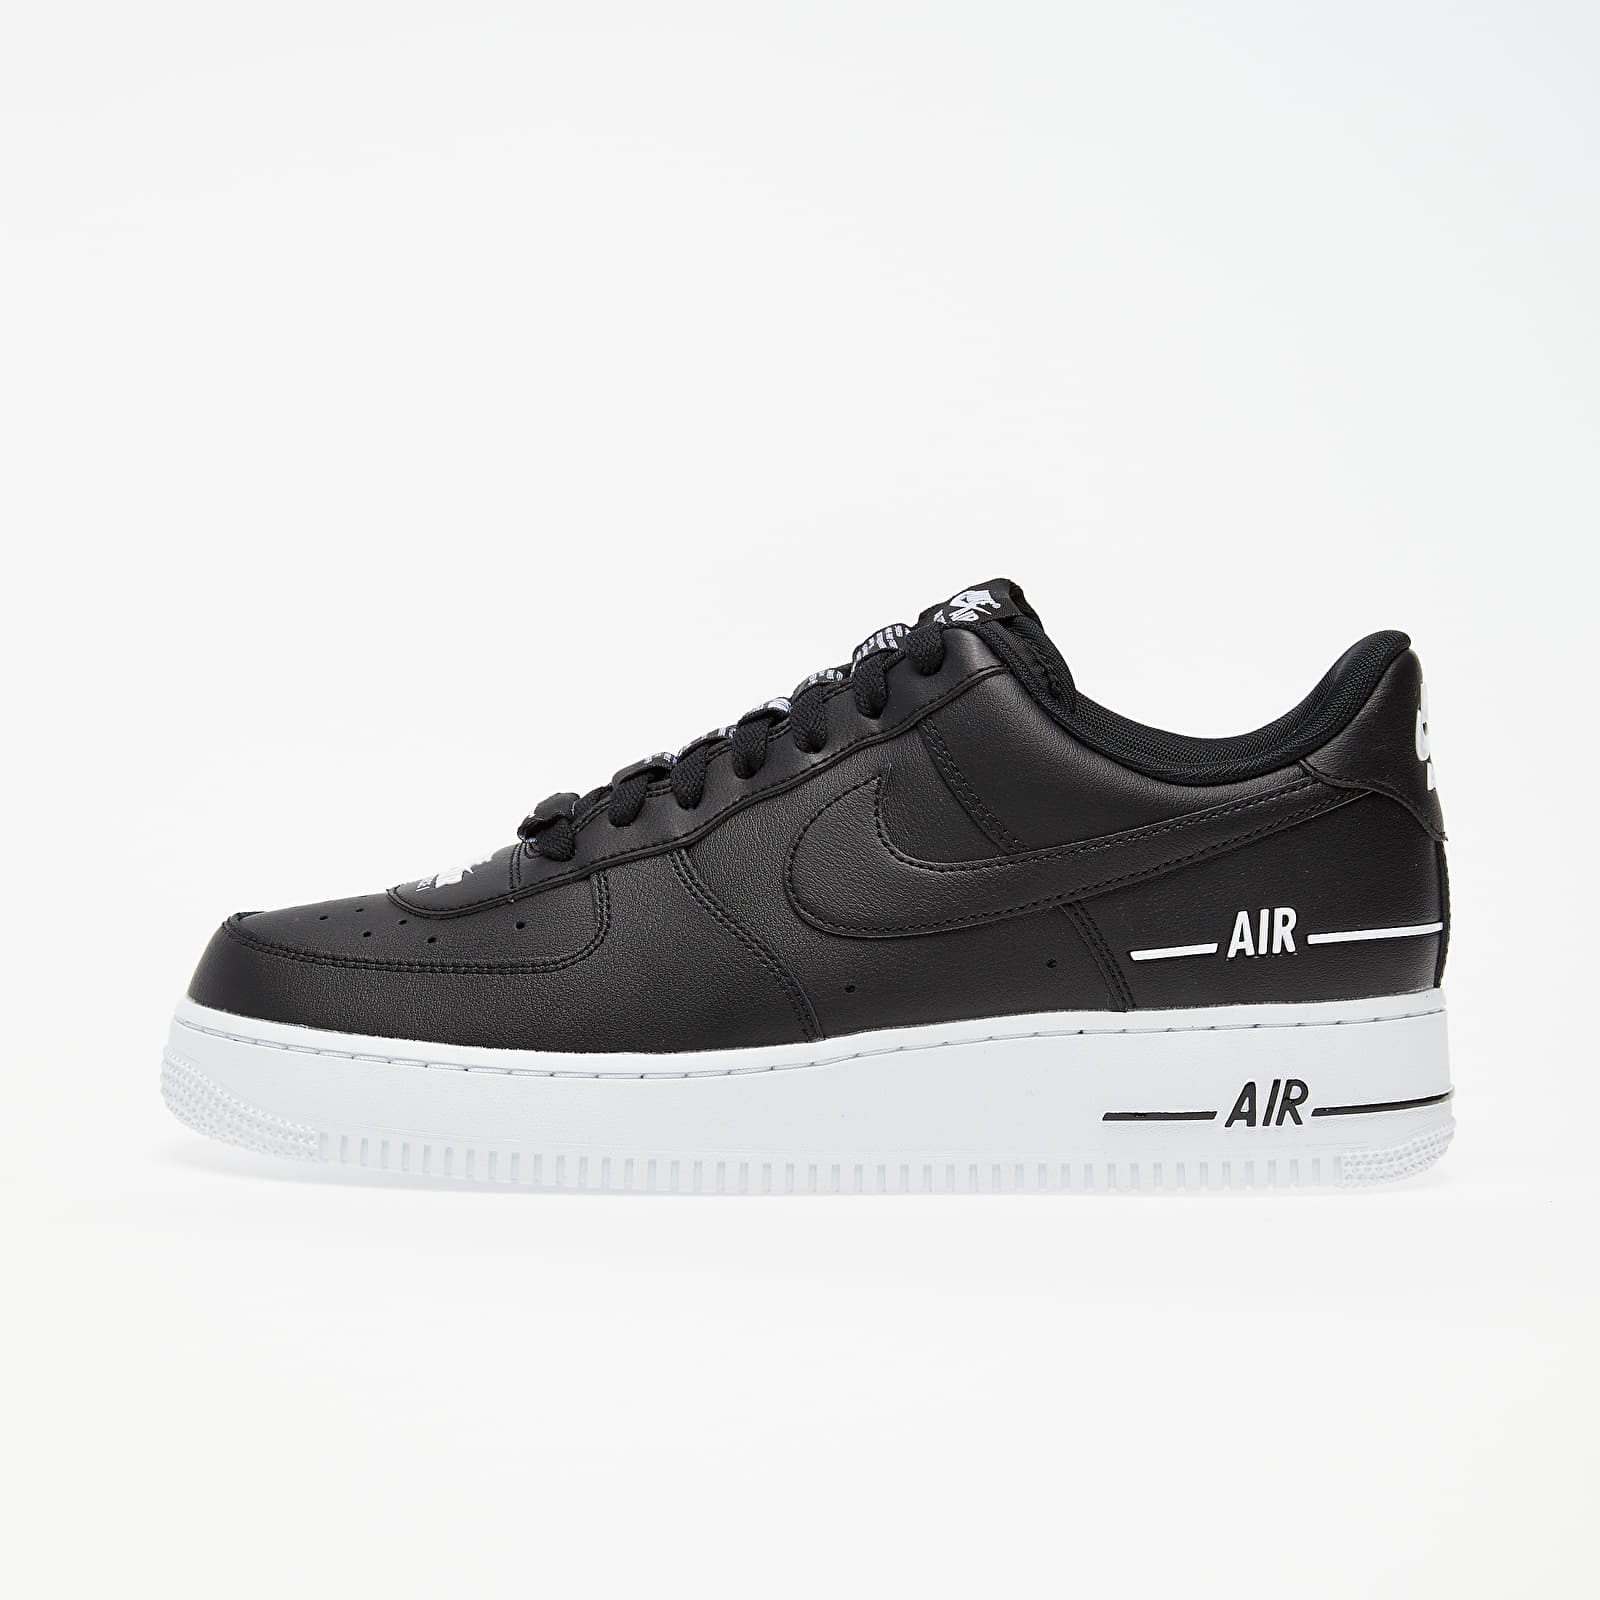 Männer Nike Air Force 1 '07 Lv8 3 Black/ Black-White